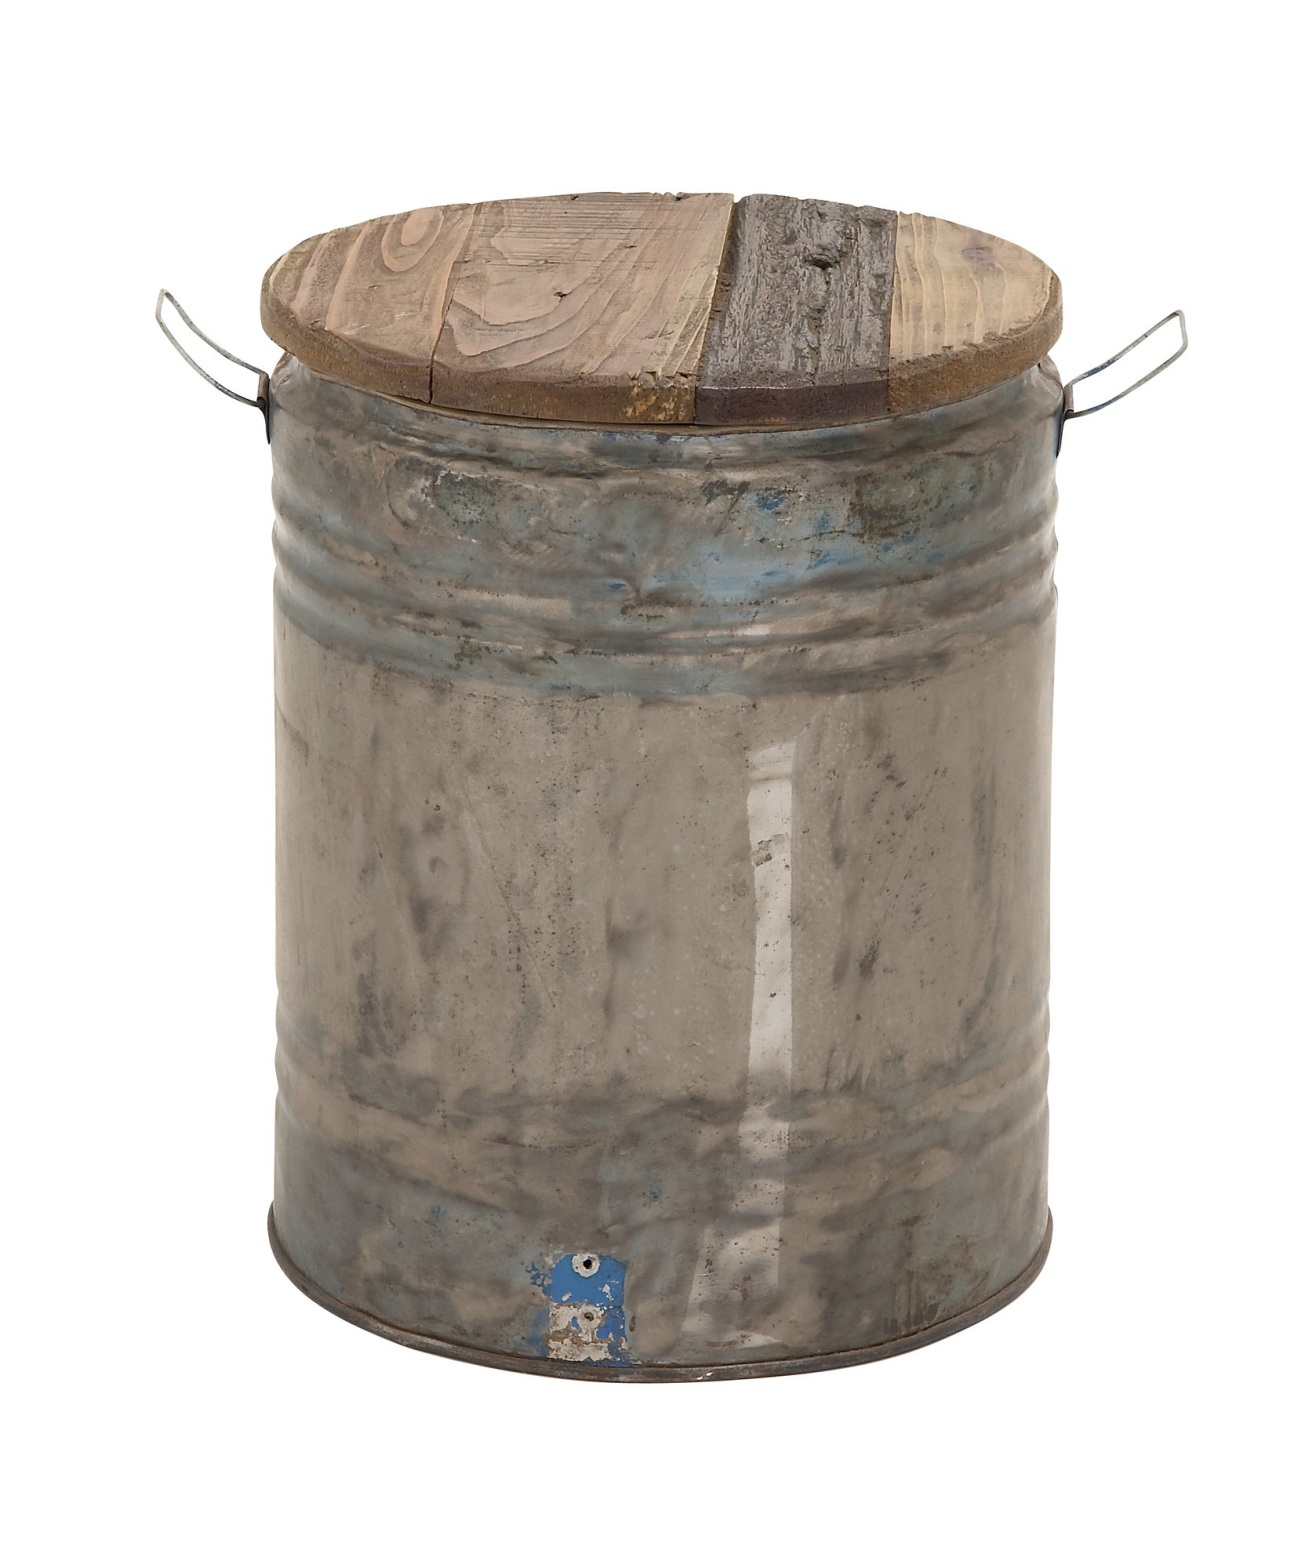 Woodland Imports Very Artistic Metal Wood Drum Stool, Wayfair $124.99